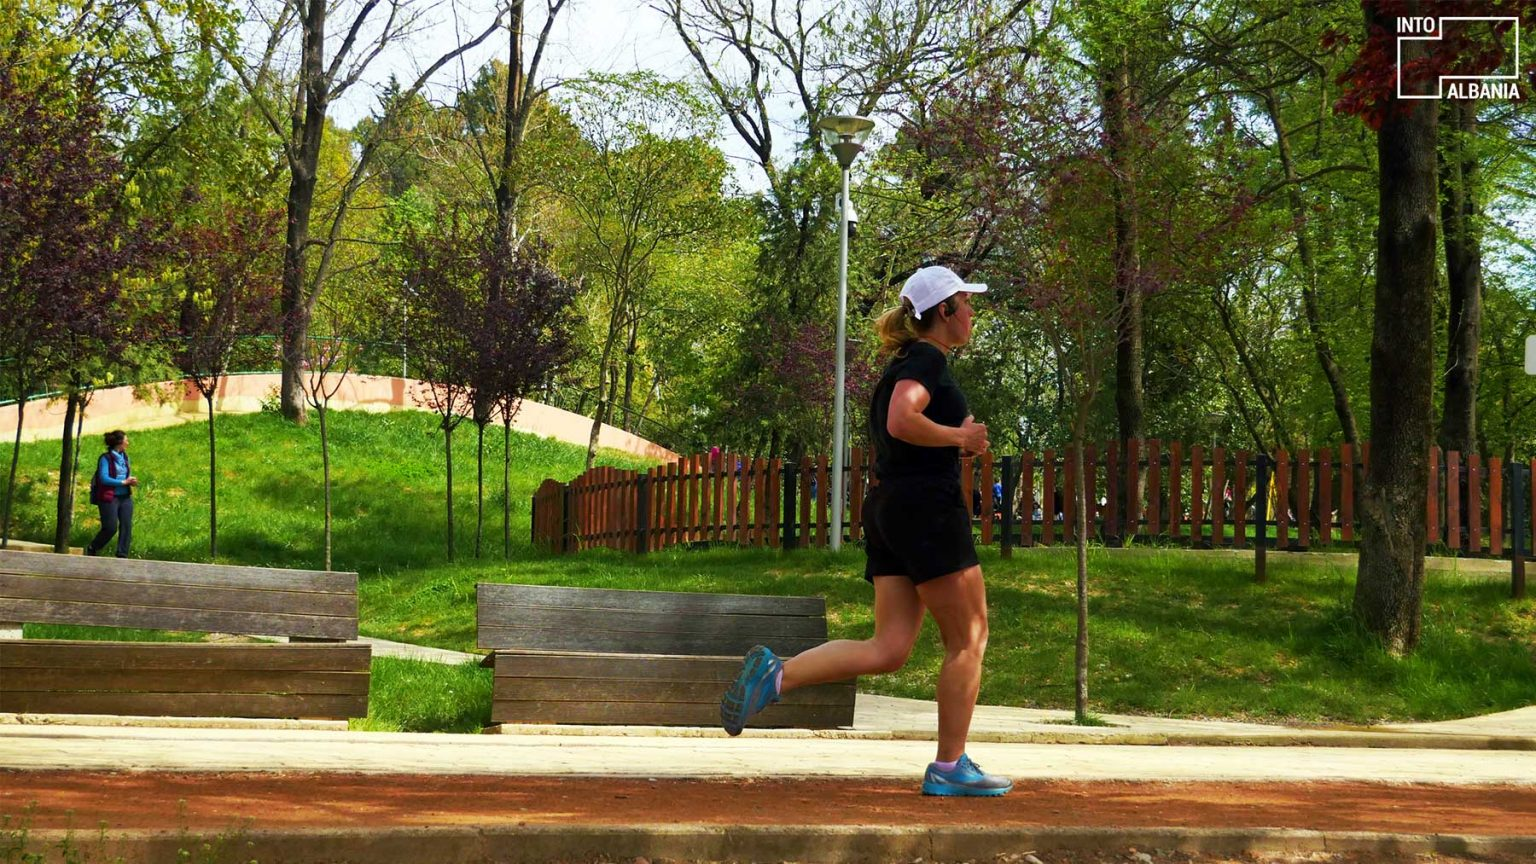 Girl jogging at the Grand Park of Tirana, photo by IntoAlbania